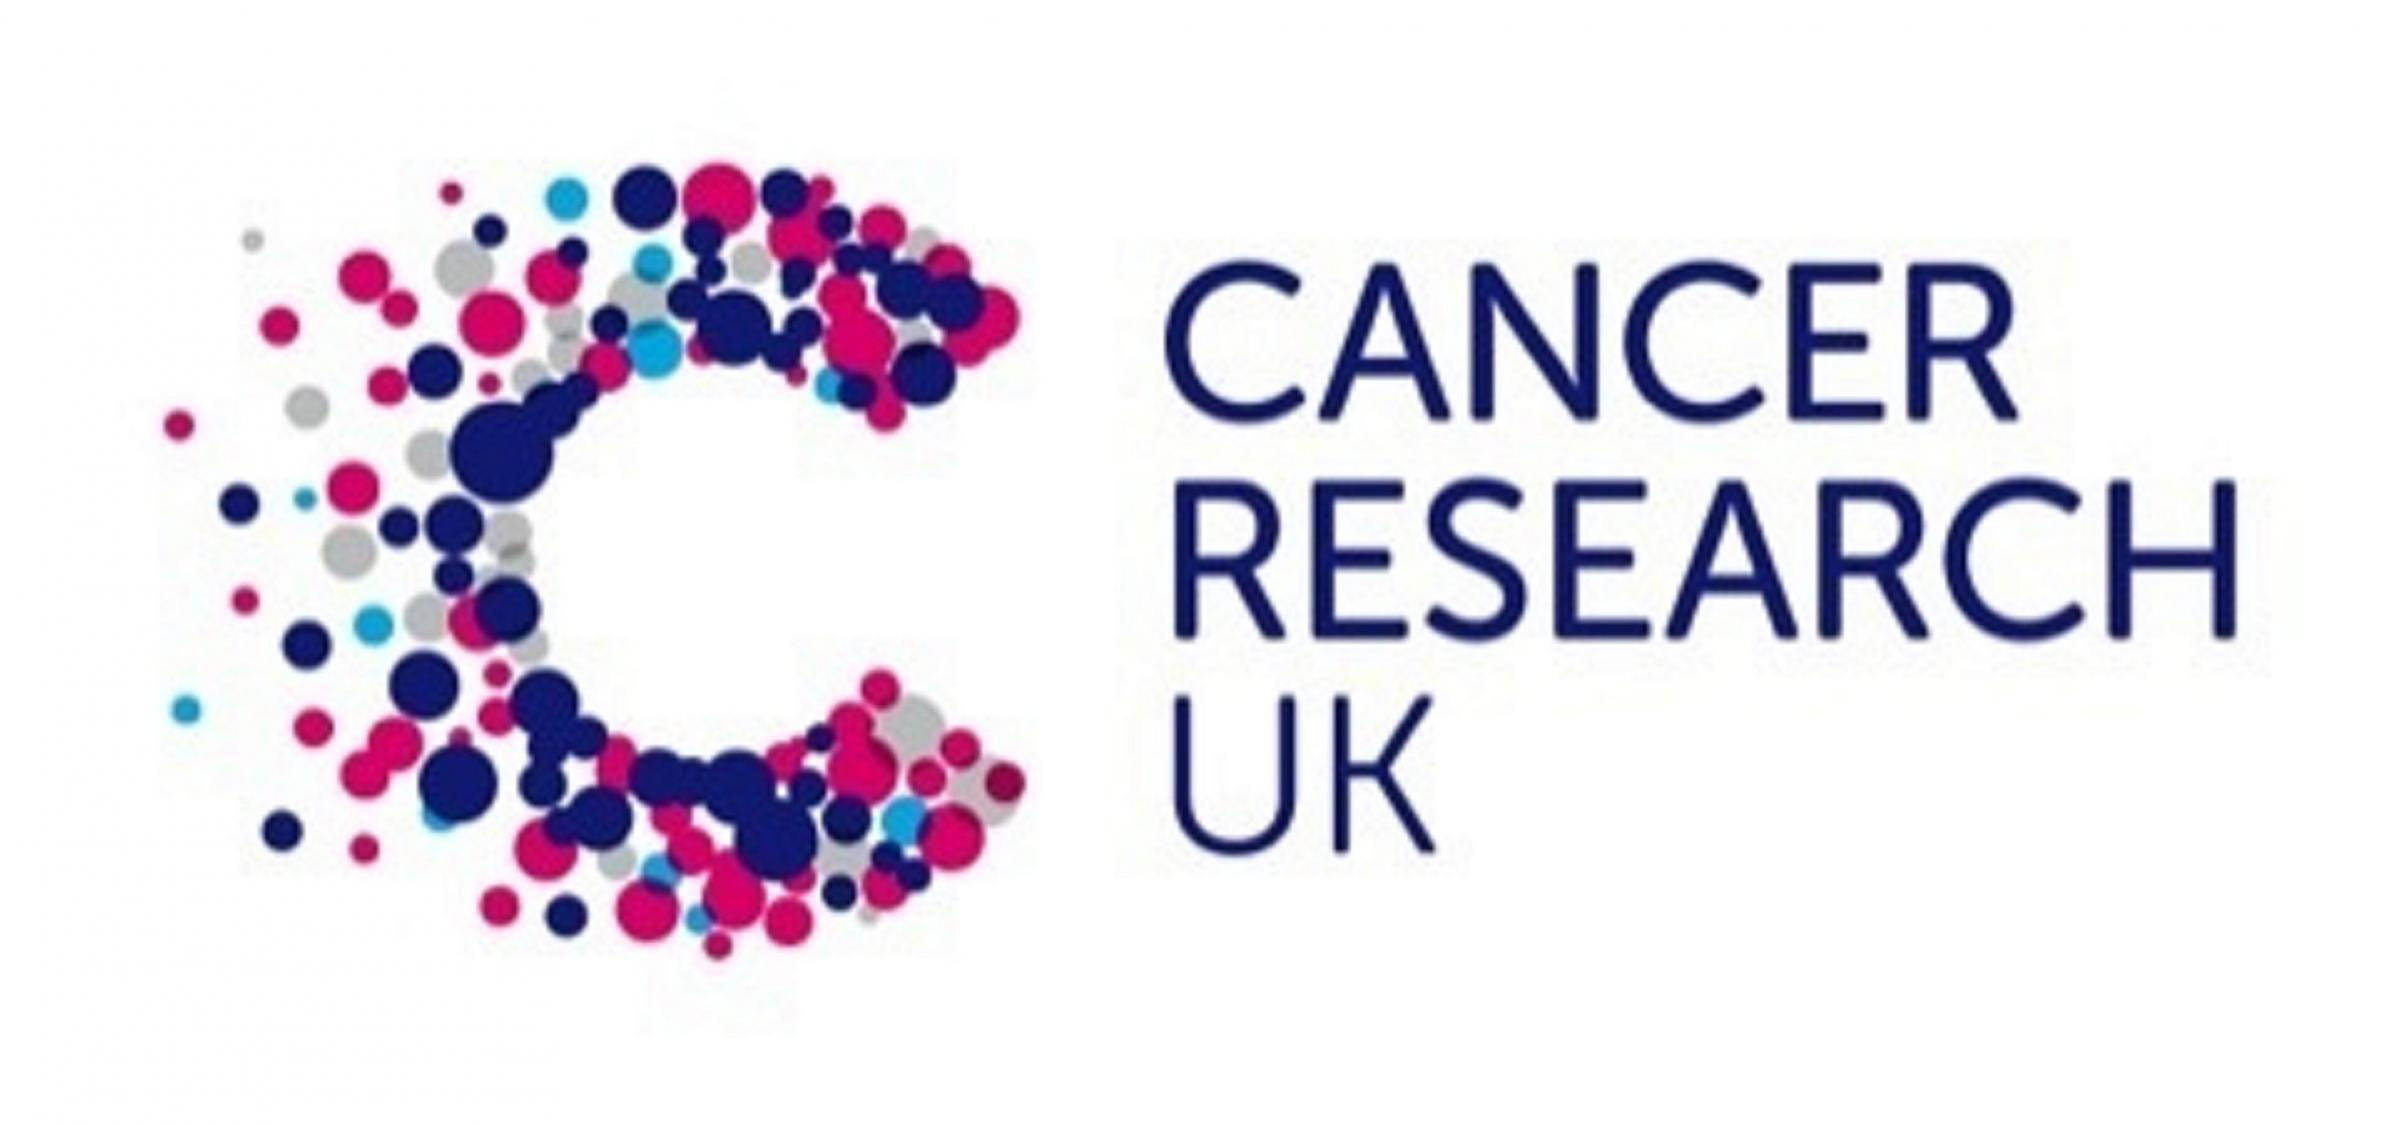 Cancer Research's first charity walk will be held this July